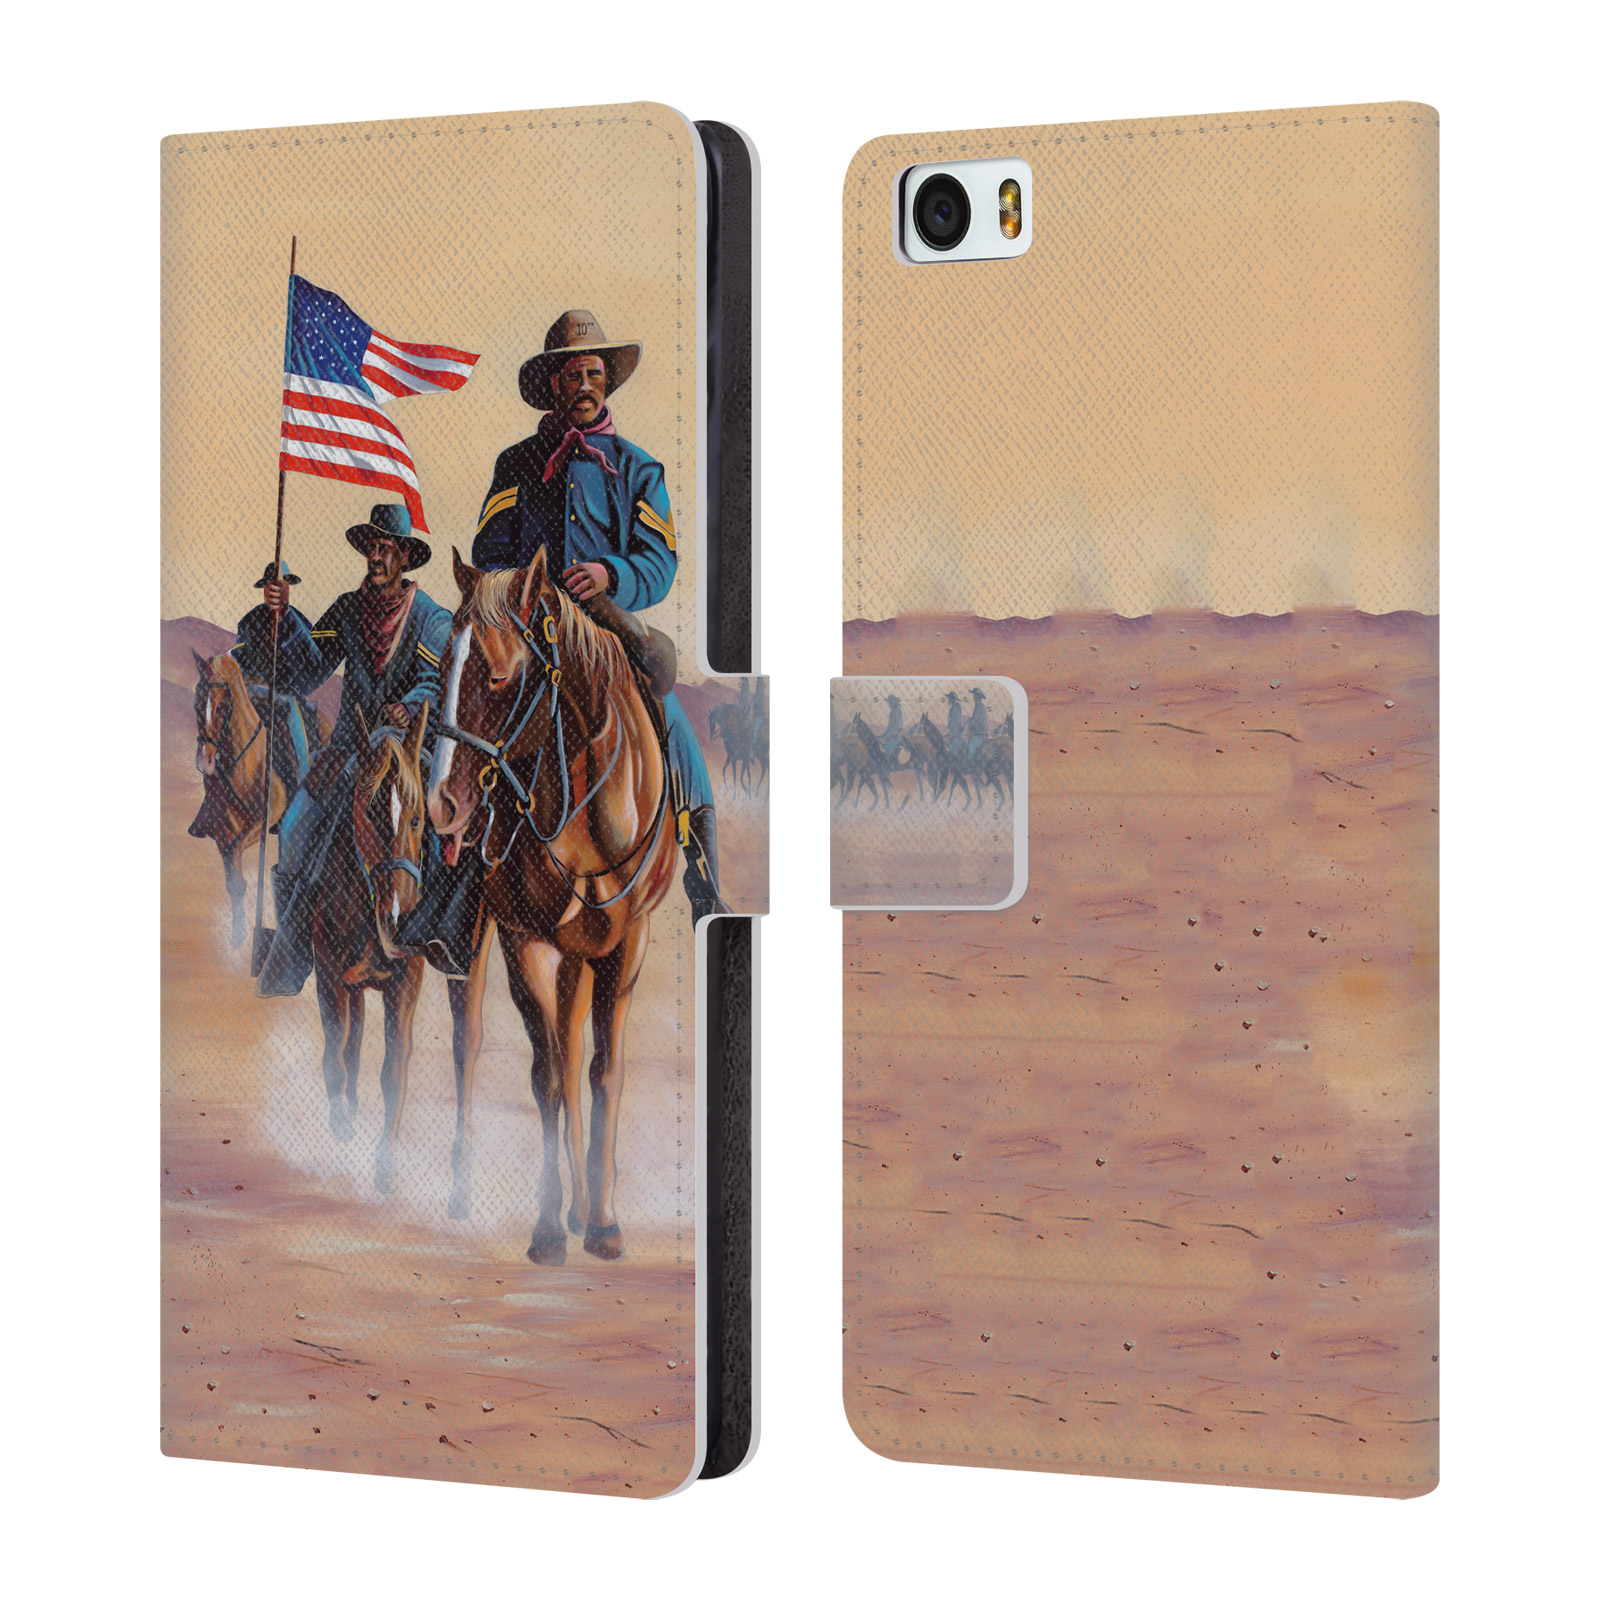 OFFICIAL-GENO-PEOPLES-ART-LIFE-LEATHER-BOOK-WALLET-CASE-COVER-FOR-XIAOMI-PHONES